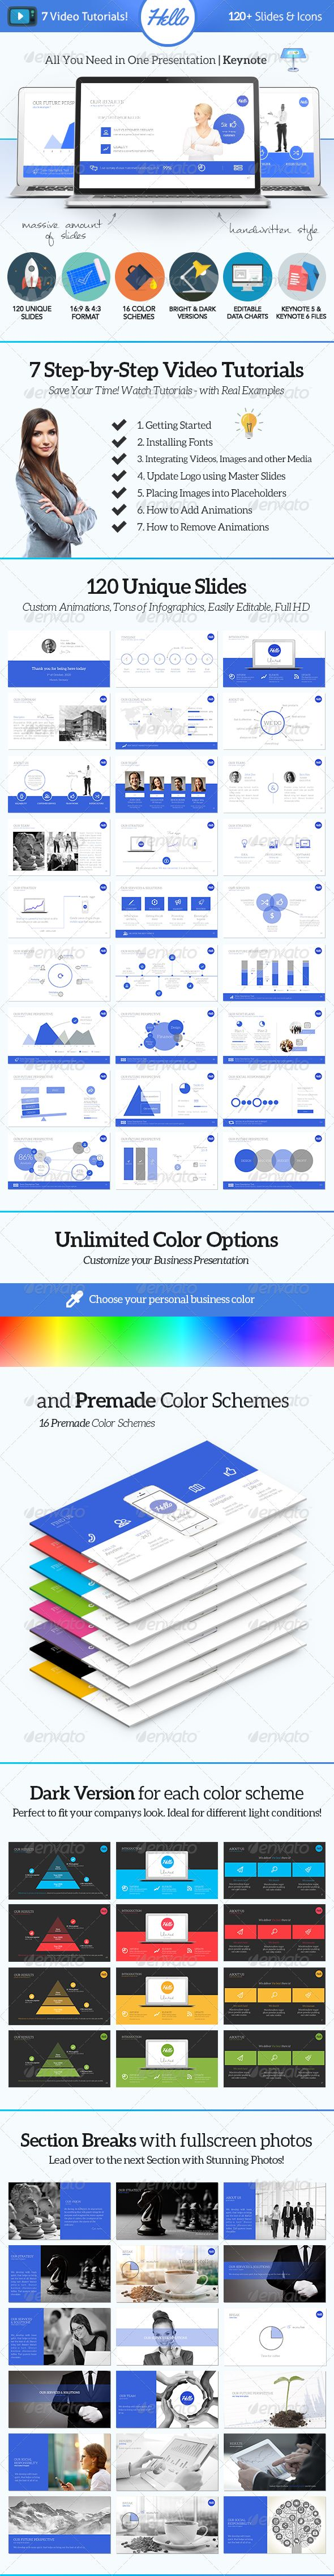 Best Process Maps Images On Pinterest Cards Maps And Cleaning - Fresh restaurant presentation template scheme